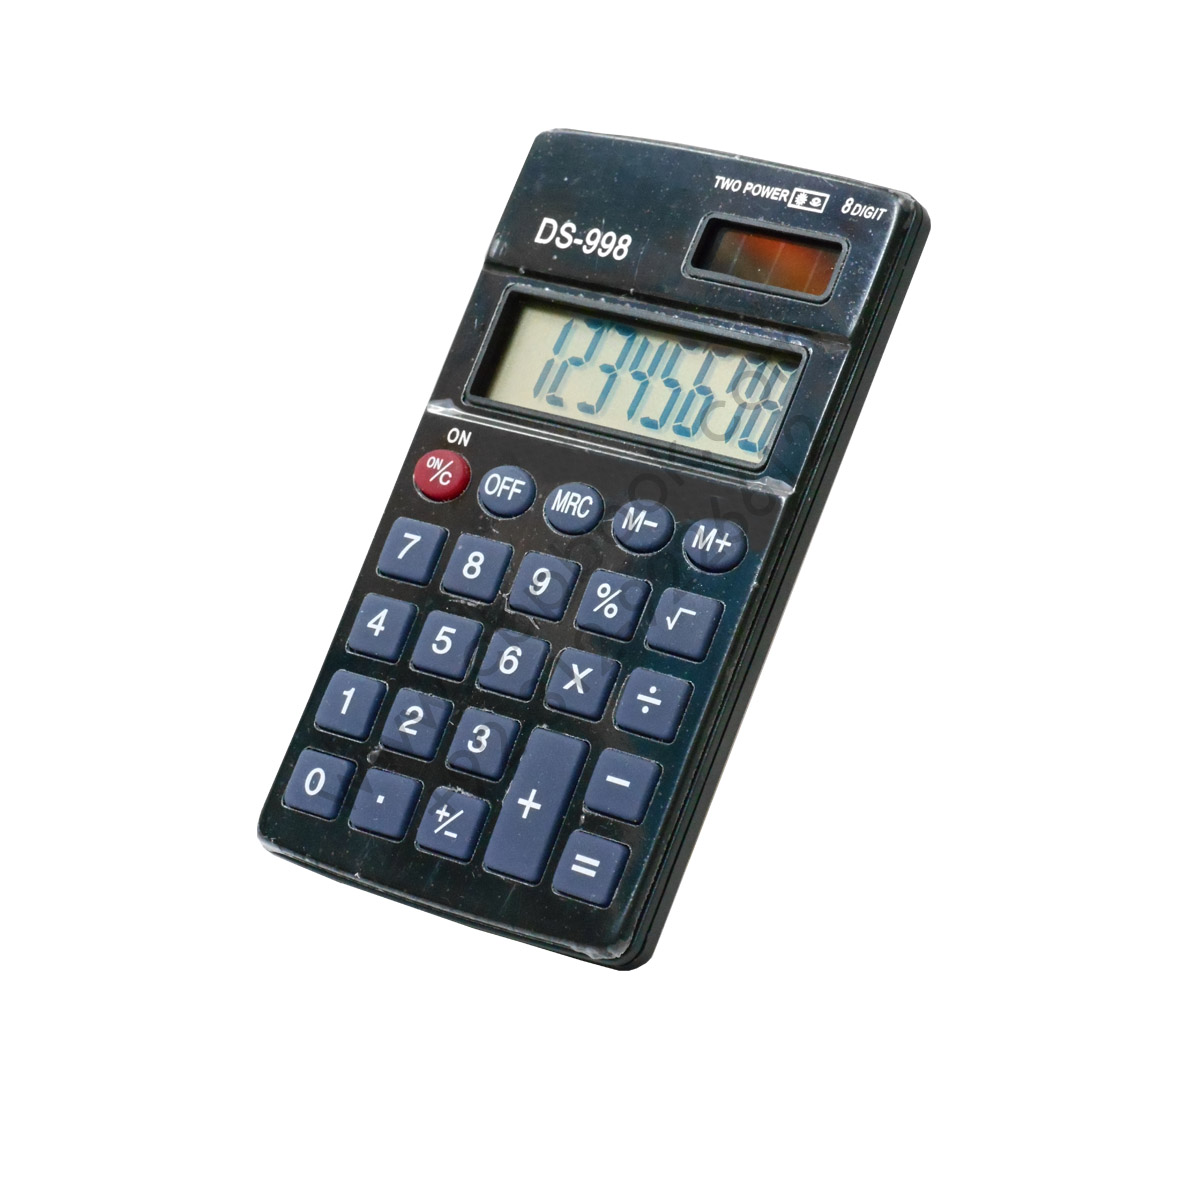 8 digit electronic calculator ds-998